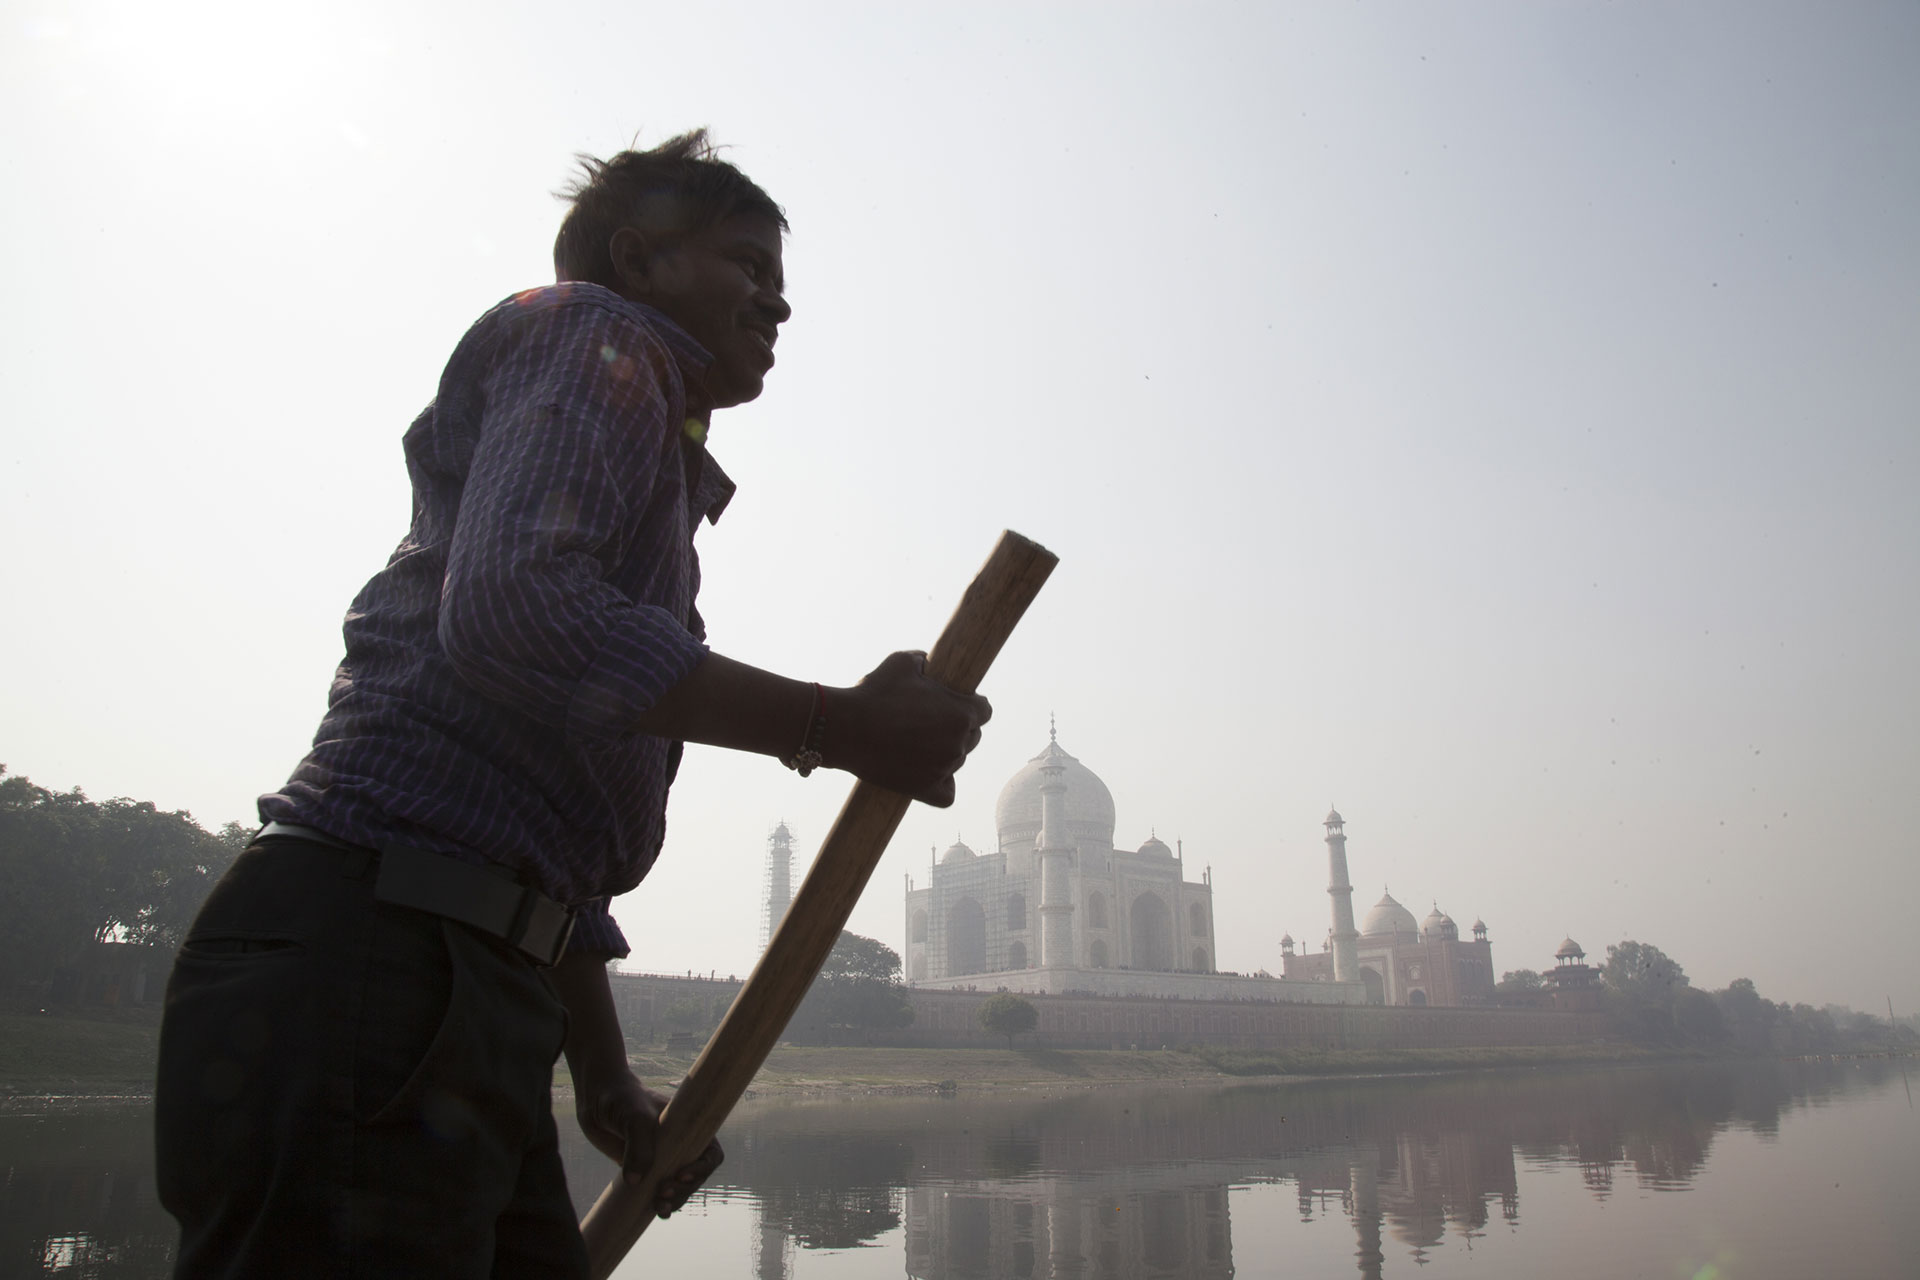 Pollution around the Taj Mahal in India © Vinit Gupta / Greenpeace